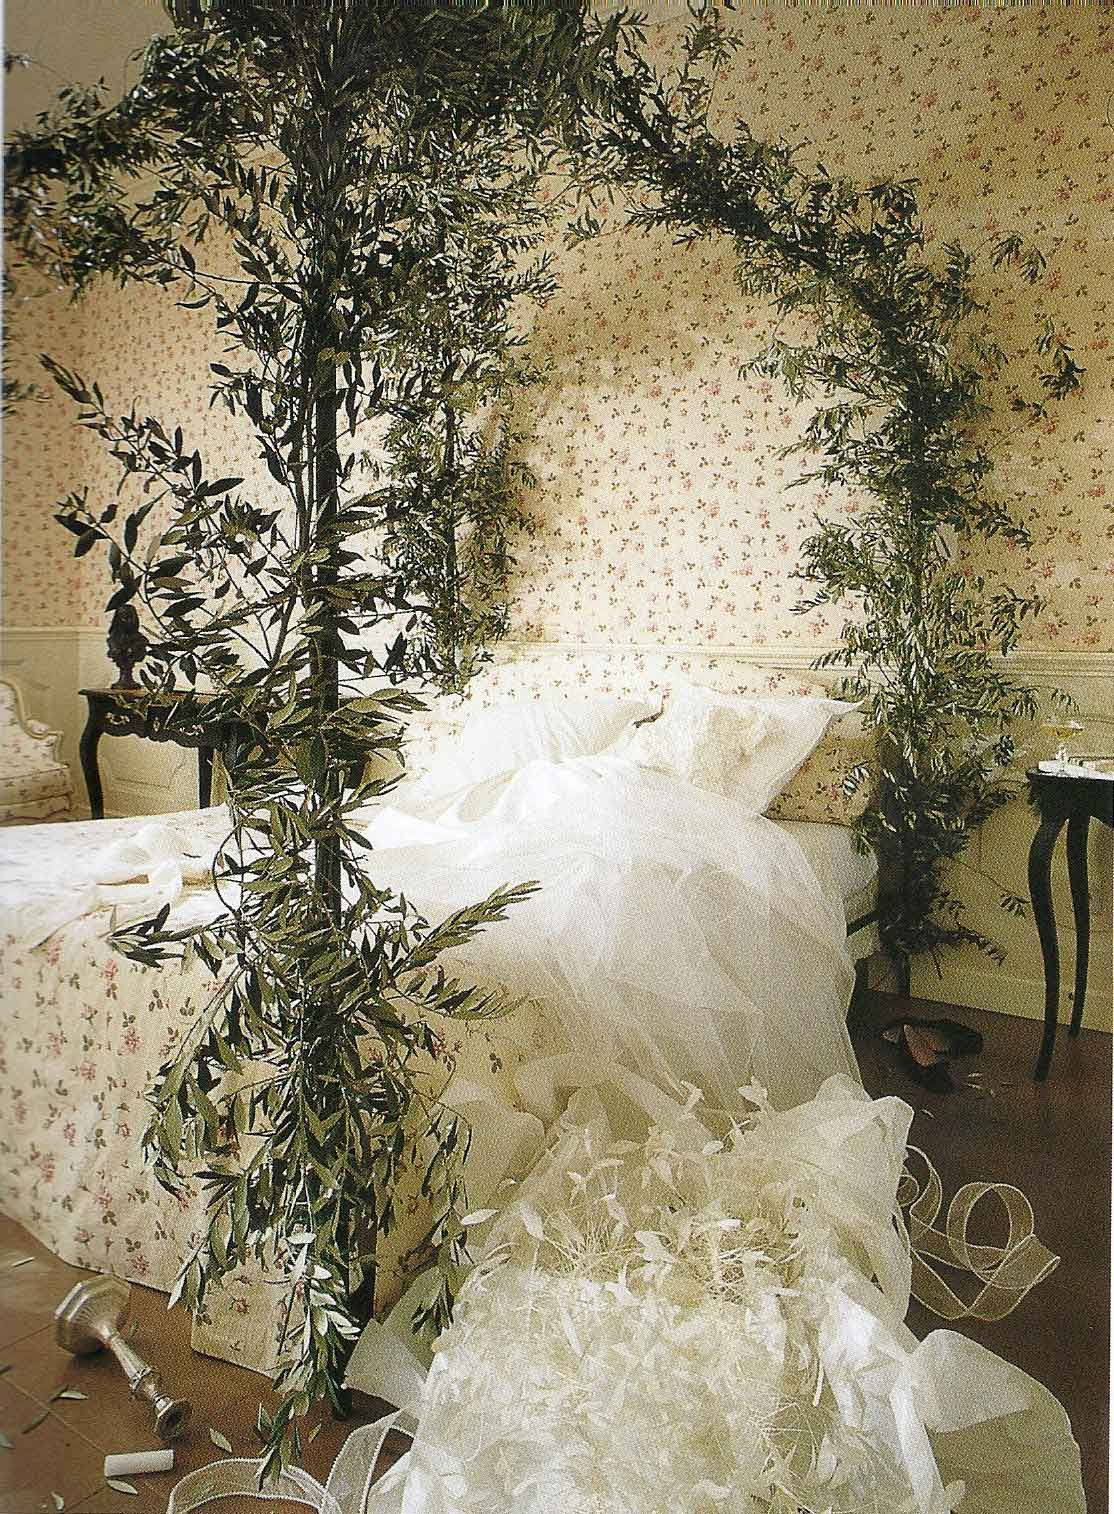 Whimsical Beds Stunning Green Plant Of Fairytale Bed  Decor Inspiration